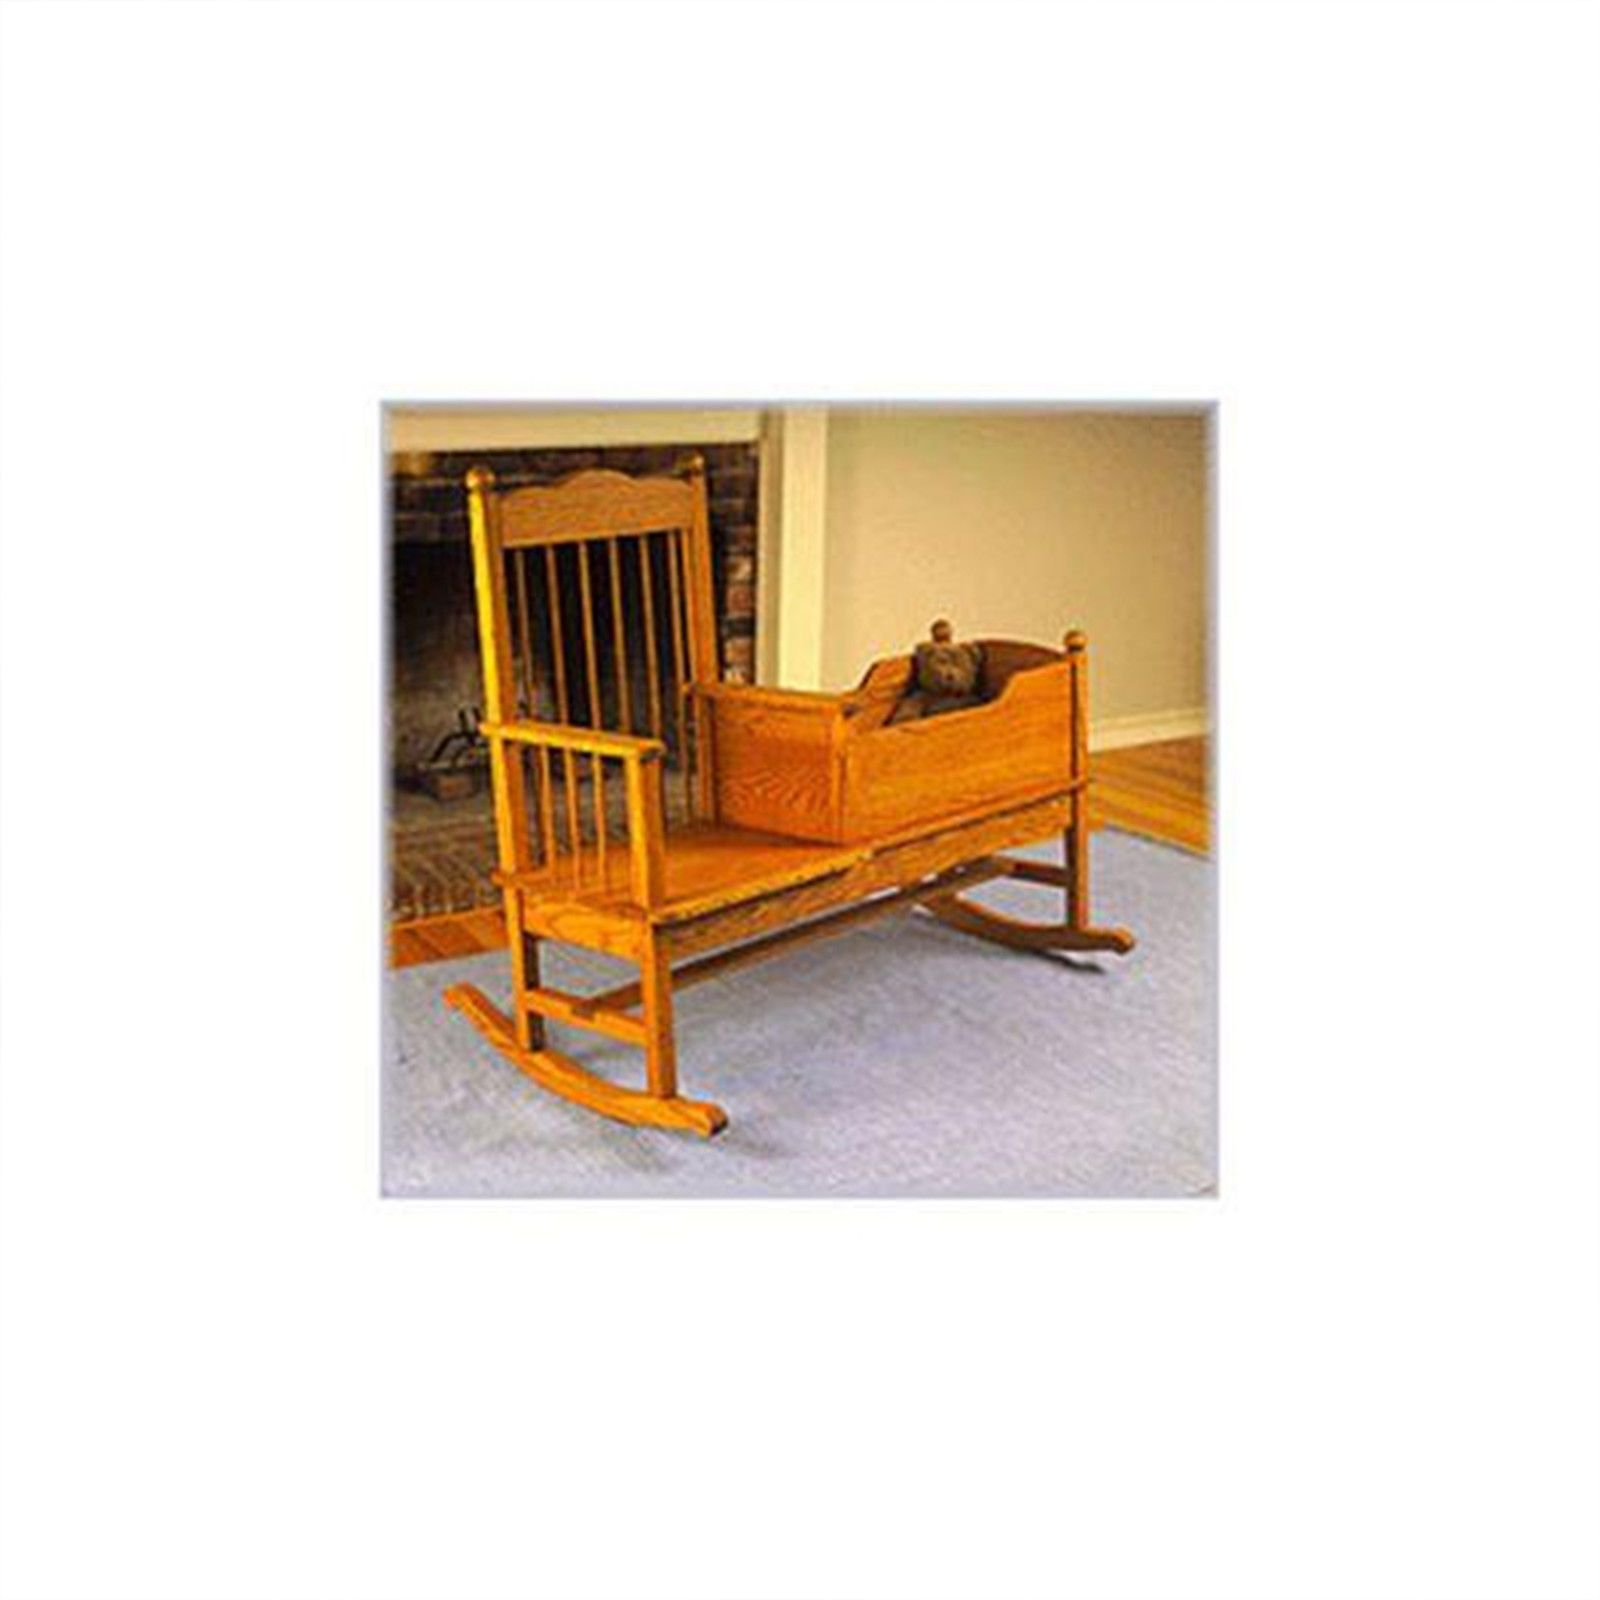 Woodworking Project Paper Plan To Build Rocking Chair/Cradle Combo | EBay